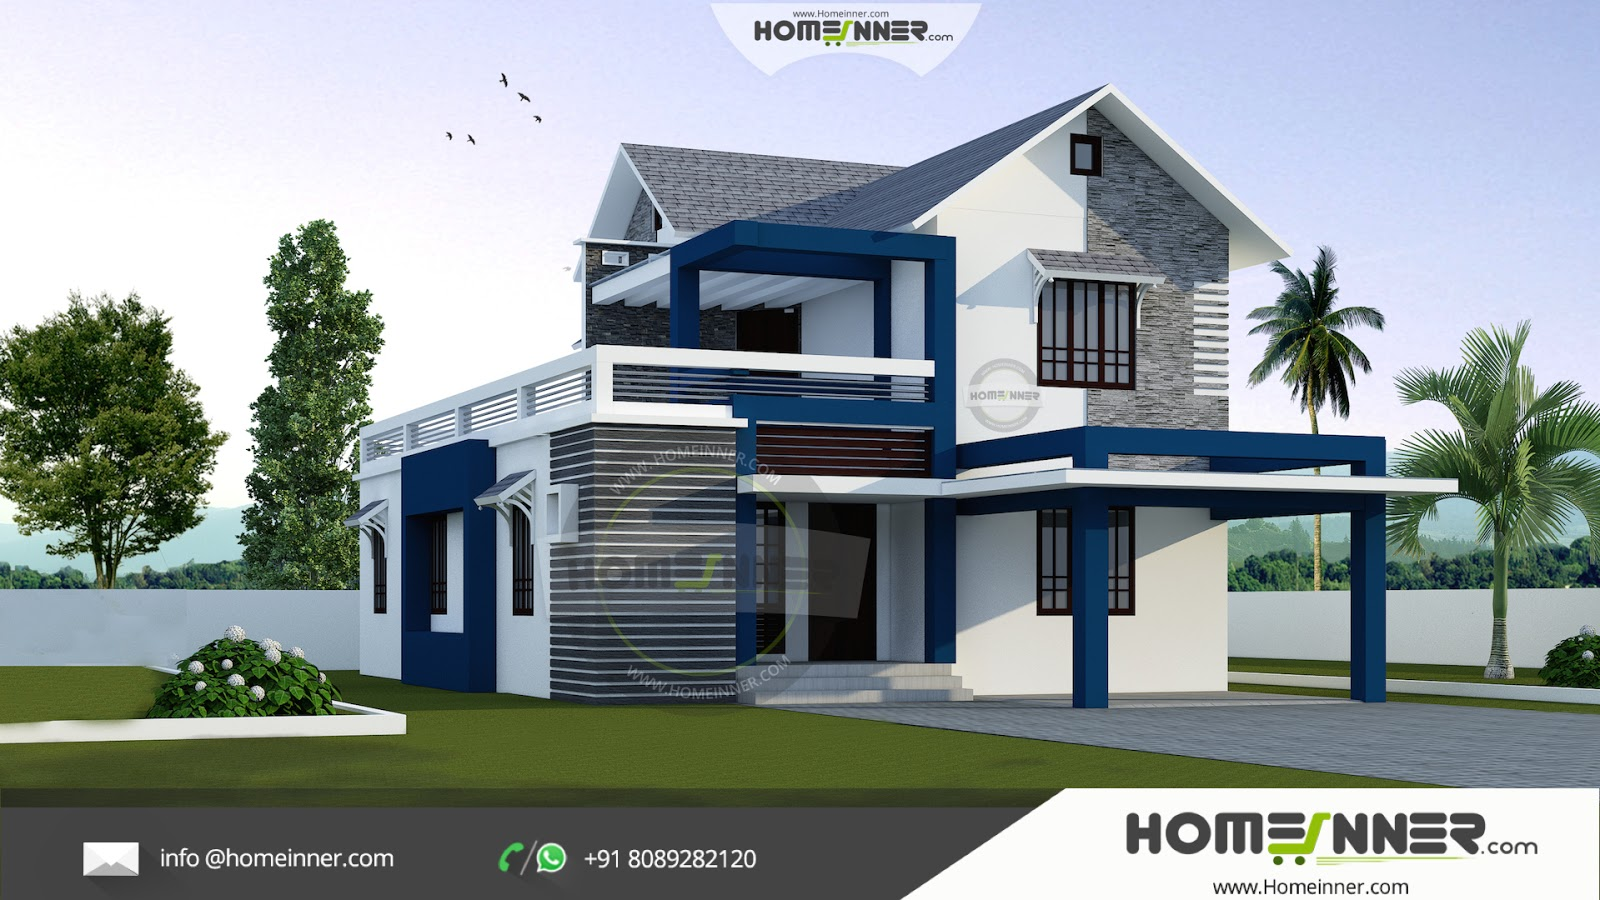 Indian Home Design: Modern Stylish 3 Bhk Small Budget 1500 Sqft Indian Home Design